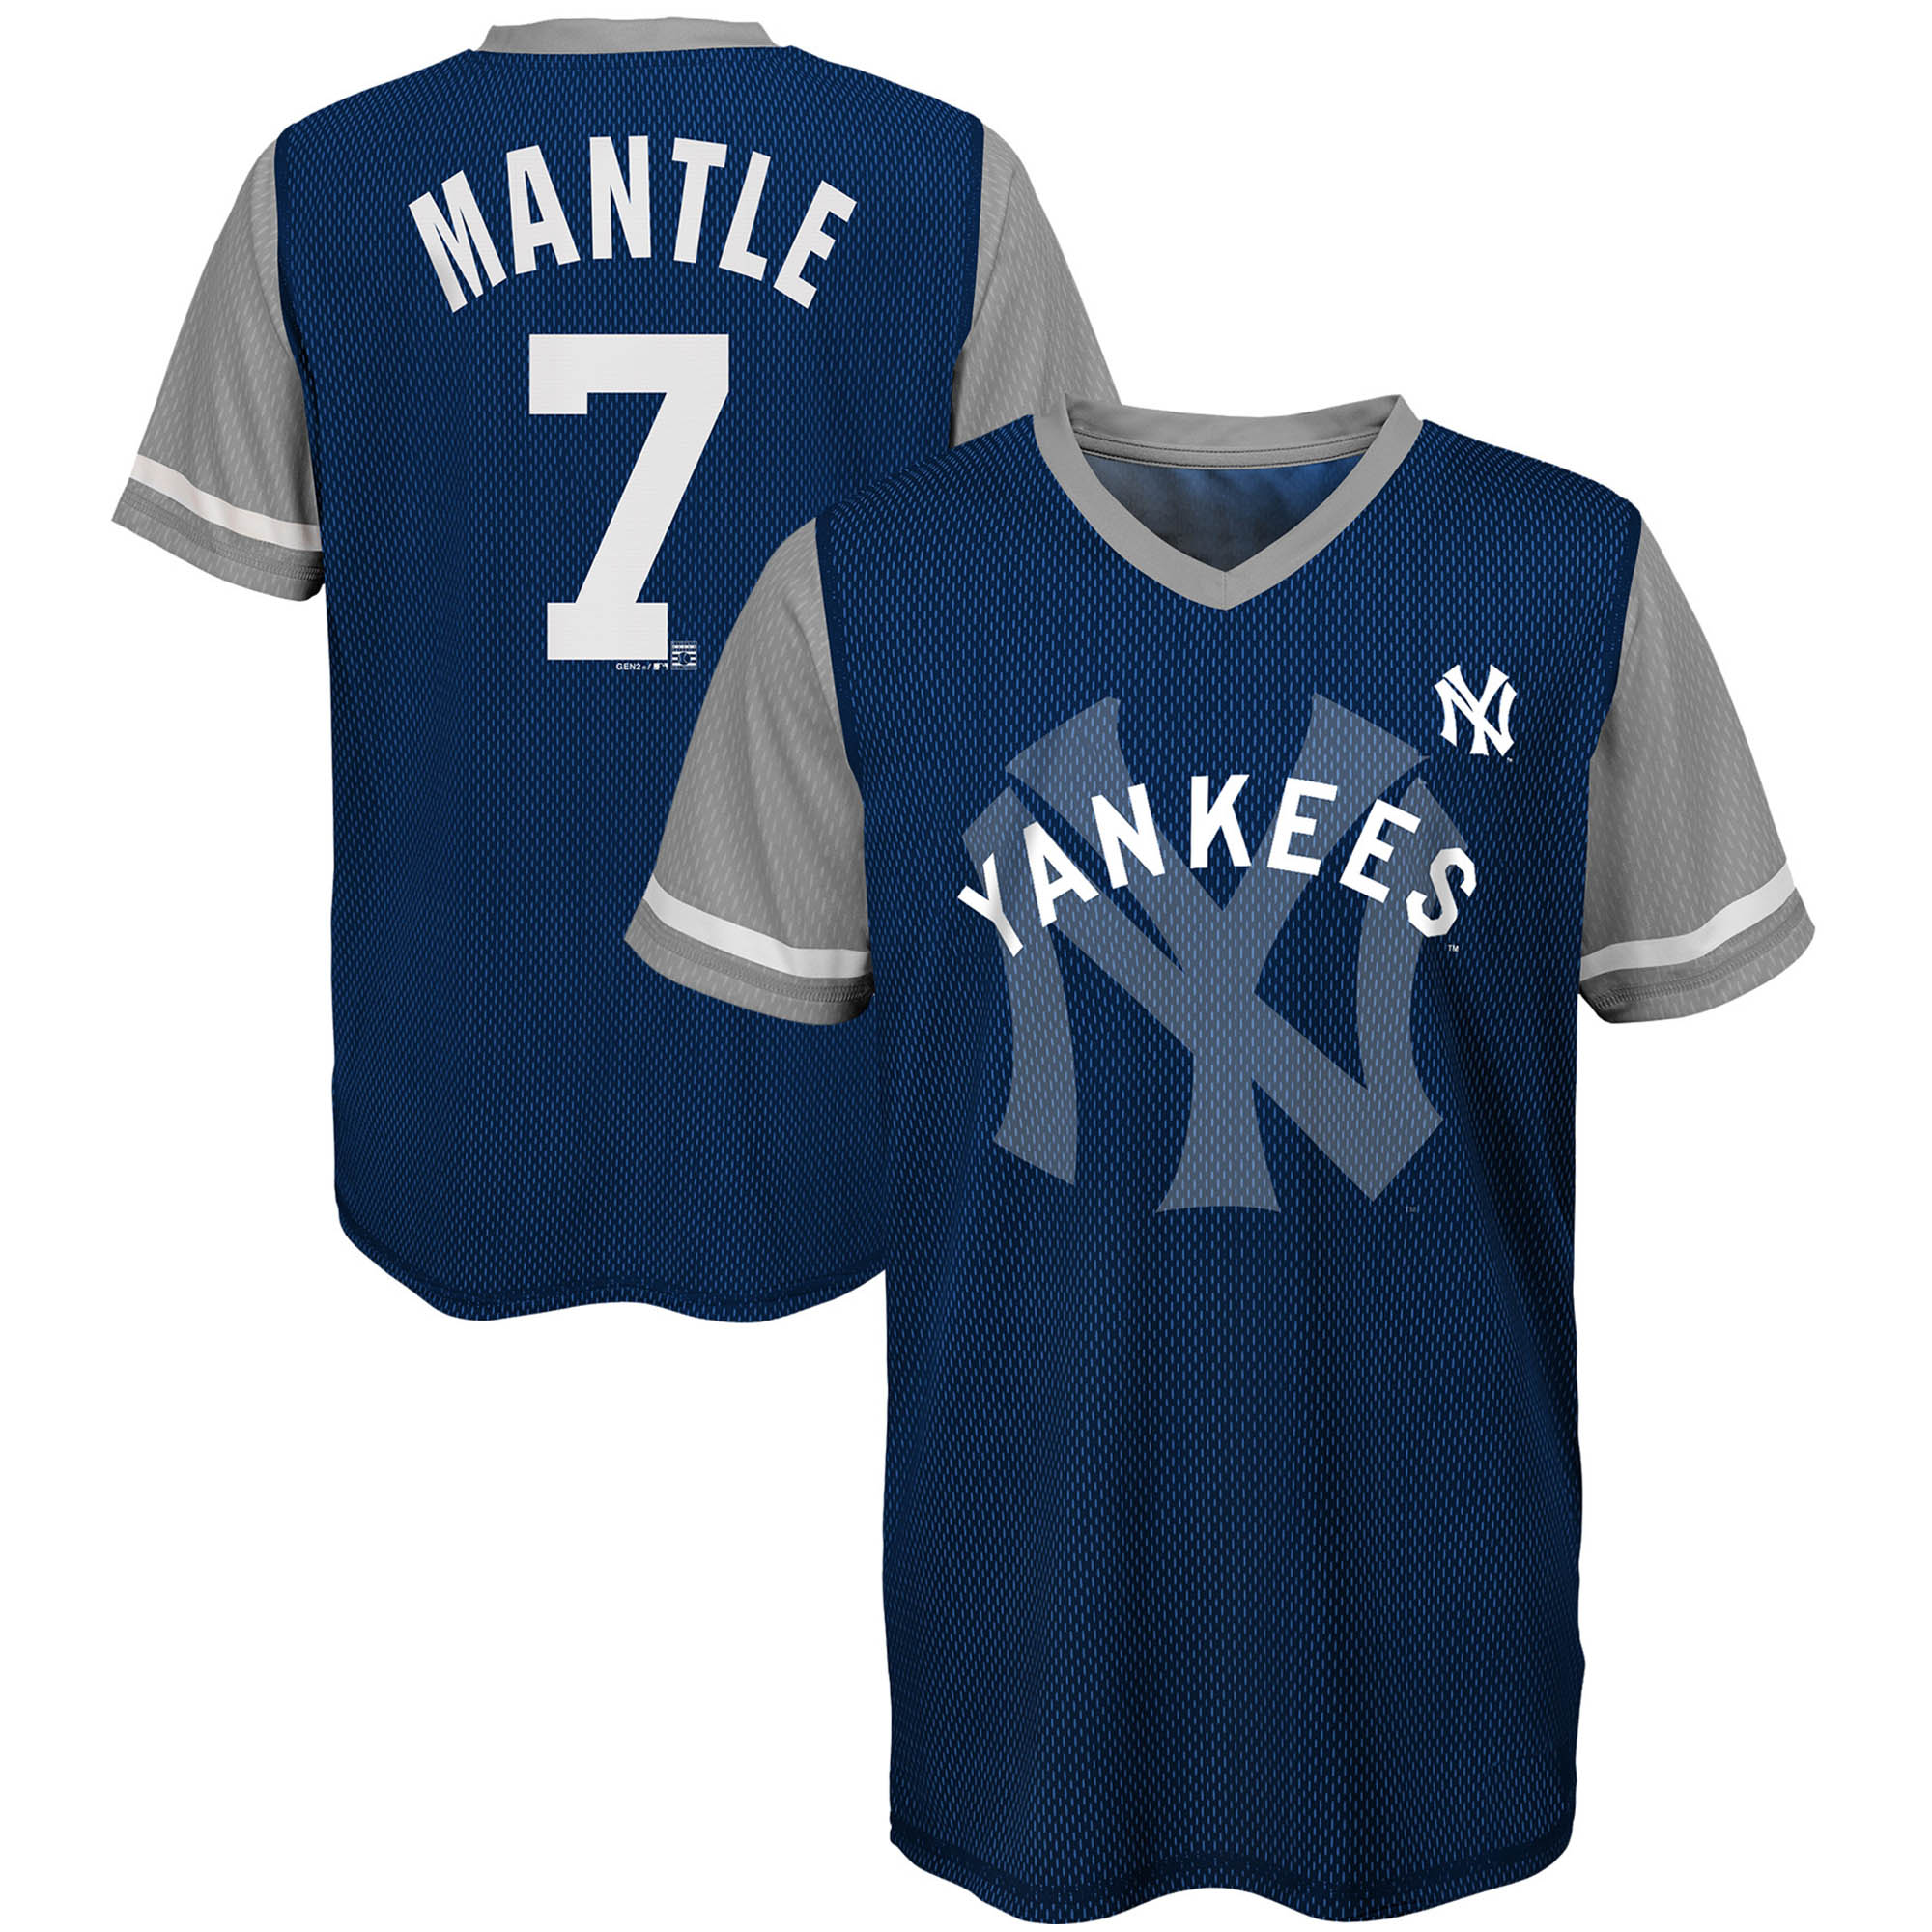 Mickey Mantle New York Yankees Majestic Youth Cooperstown Collection Play Hard Player V-Neck Jersey T-Shirt - Navy/Gray